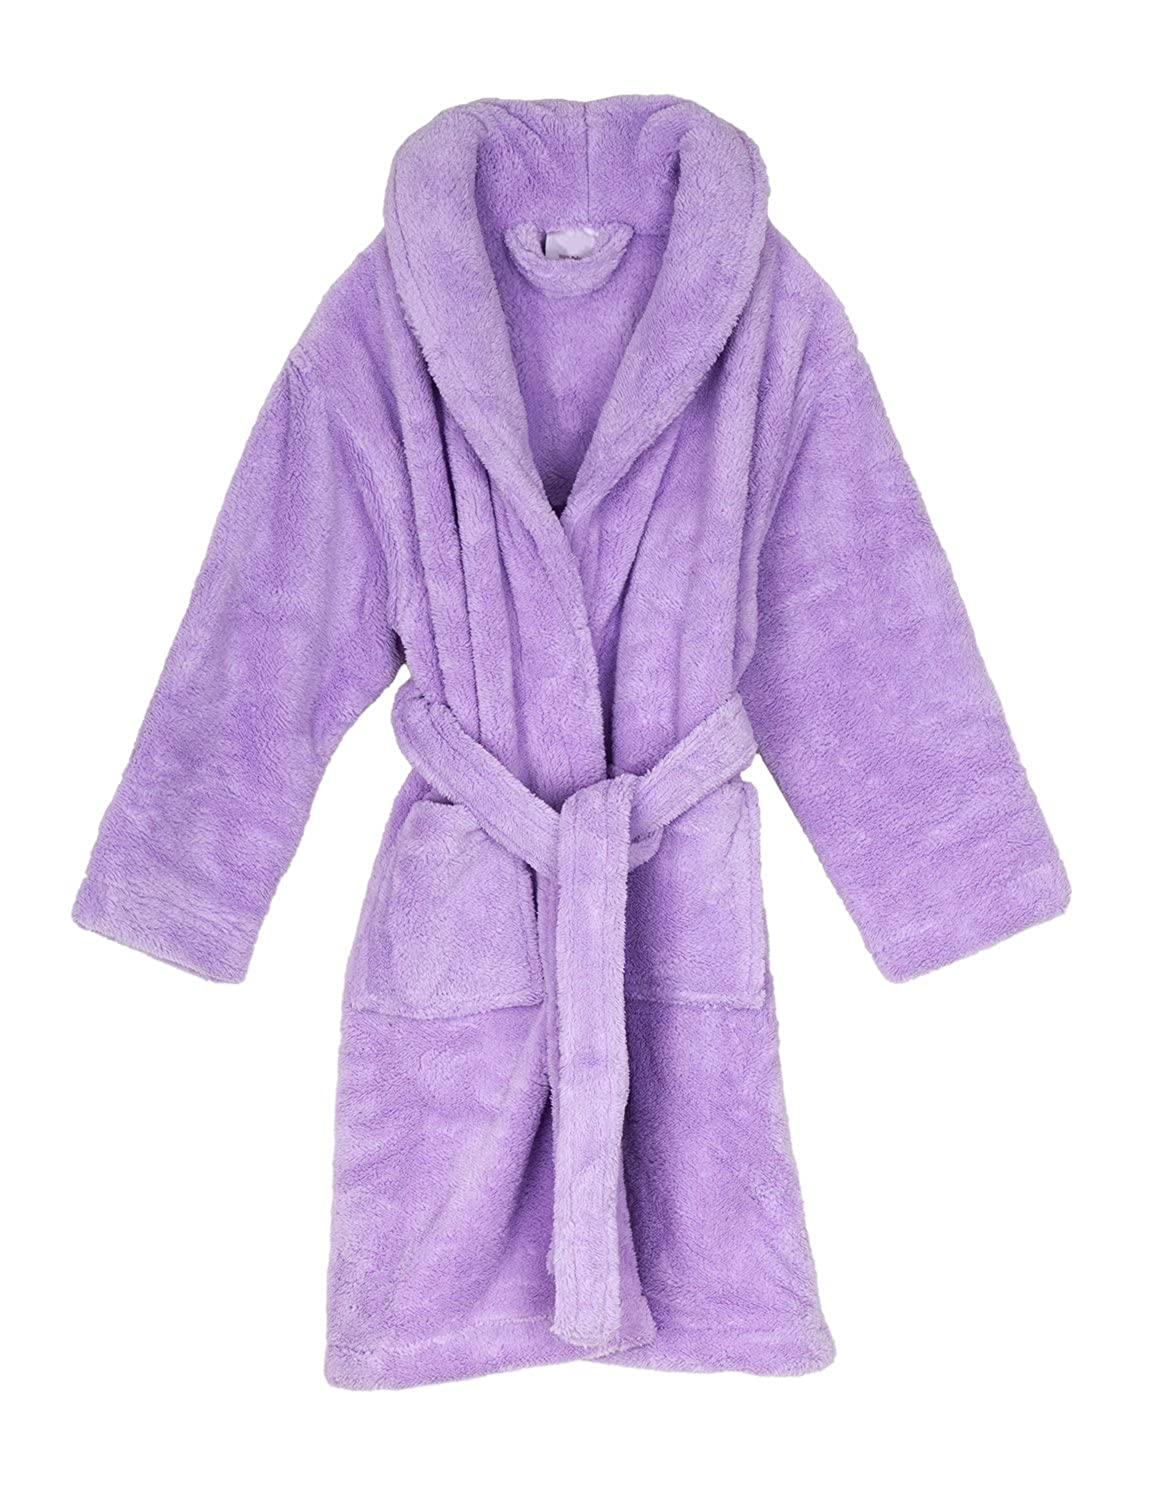 a2ceebe6d9 Amazon.com  TowelSelections Girls Robe